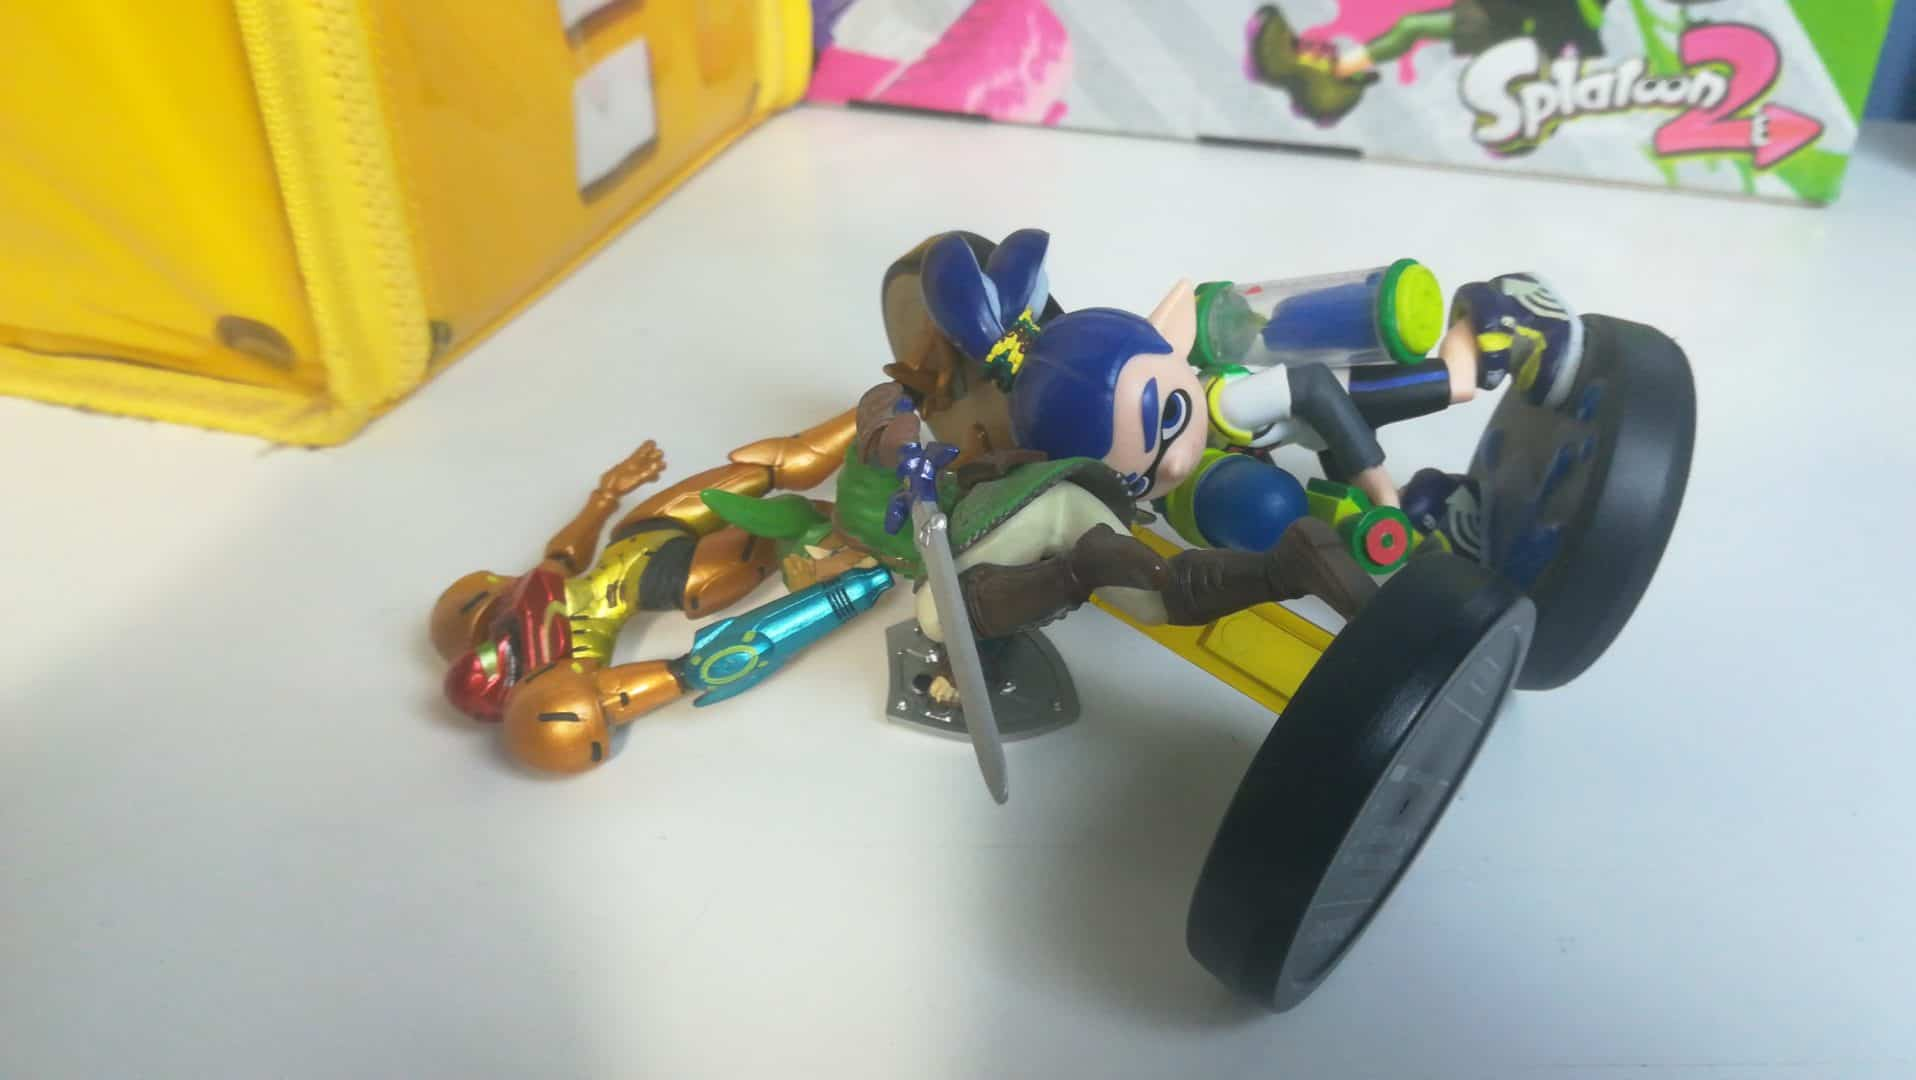 Amiibo Nintendo limited edition